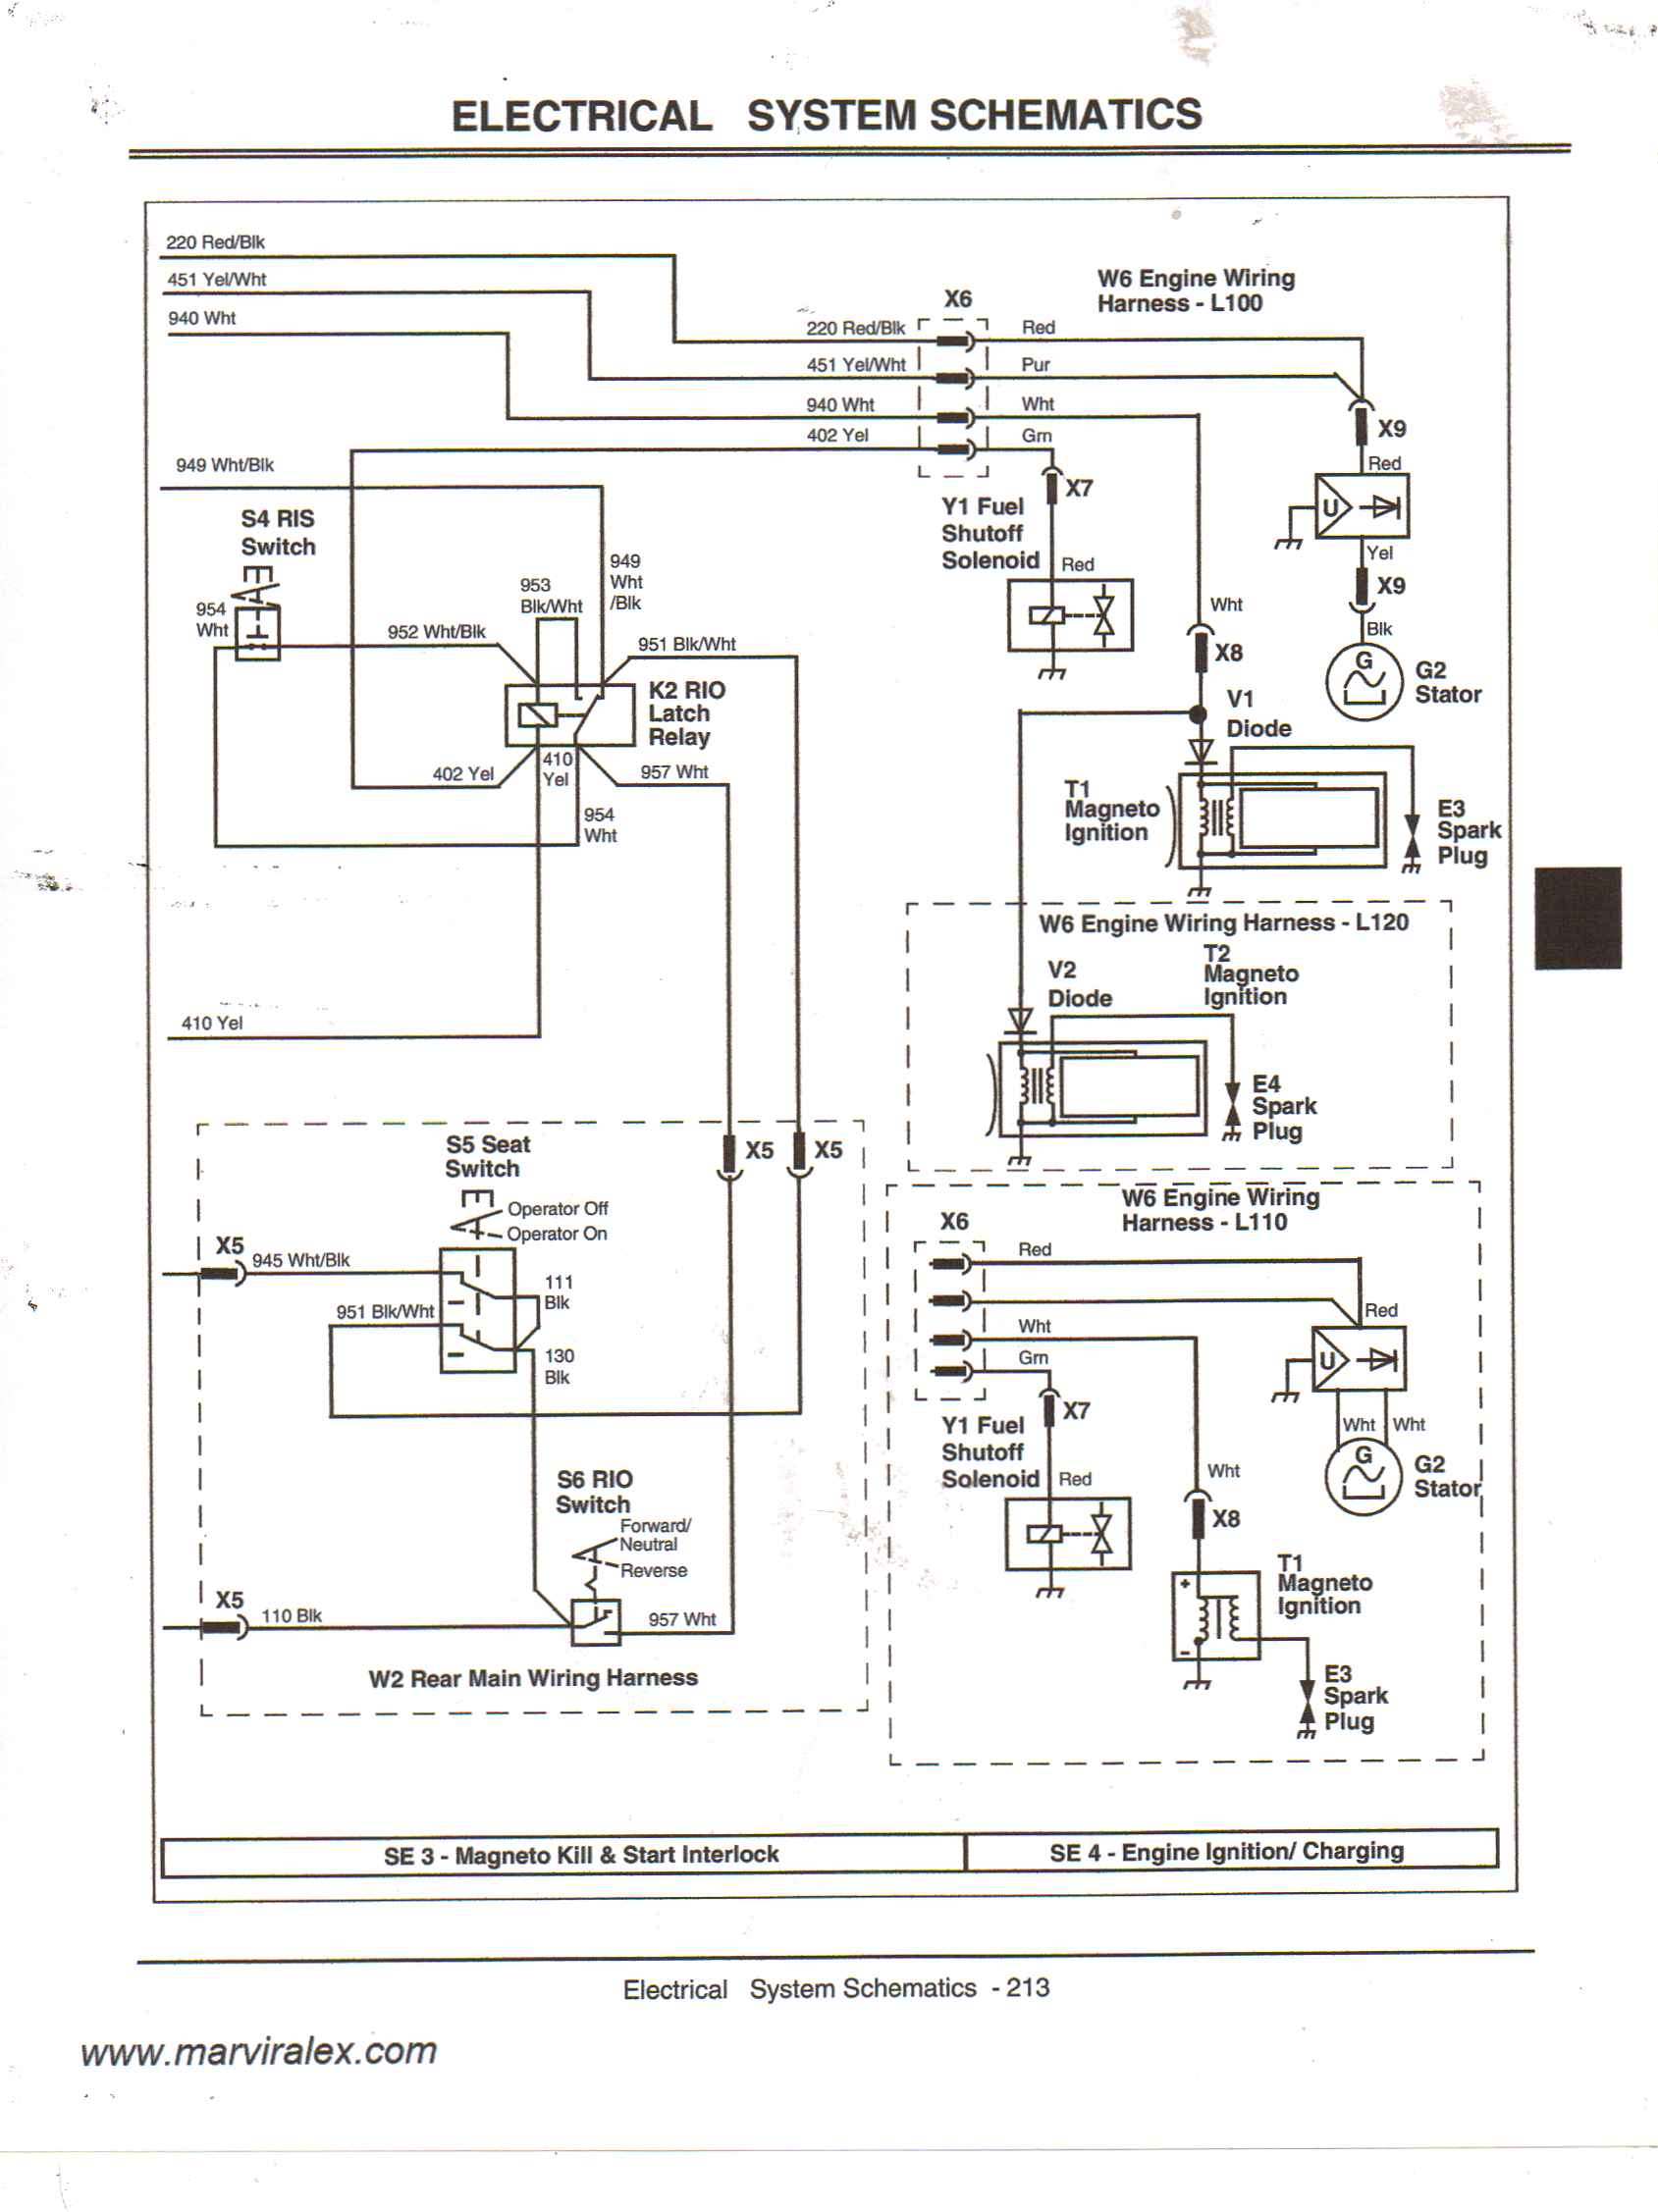 A John Deere Ignition Wiring Diagram For Model No 584000 Serial Wiring Diagrams Database Active Active Urbani Lacertosa It